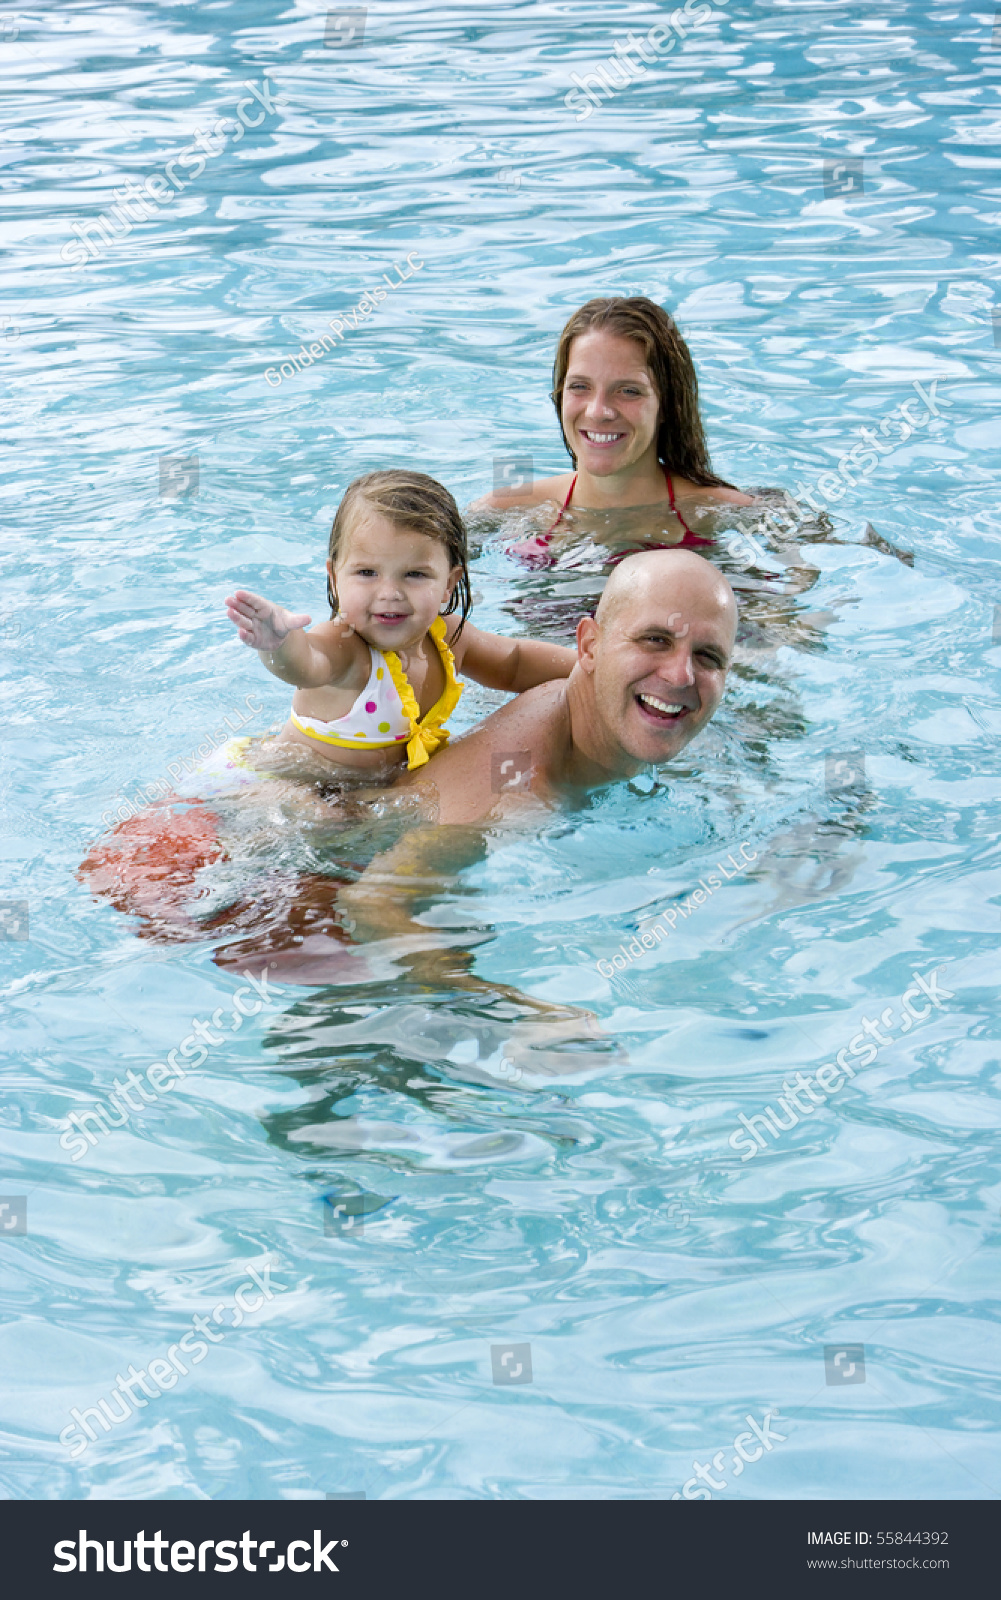 Family With 2 Year Old Girl Playing In Swimming Pool Stock Photo 55844392 Shutterstock